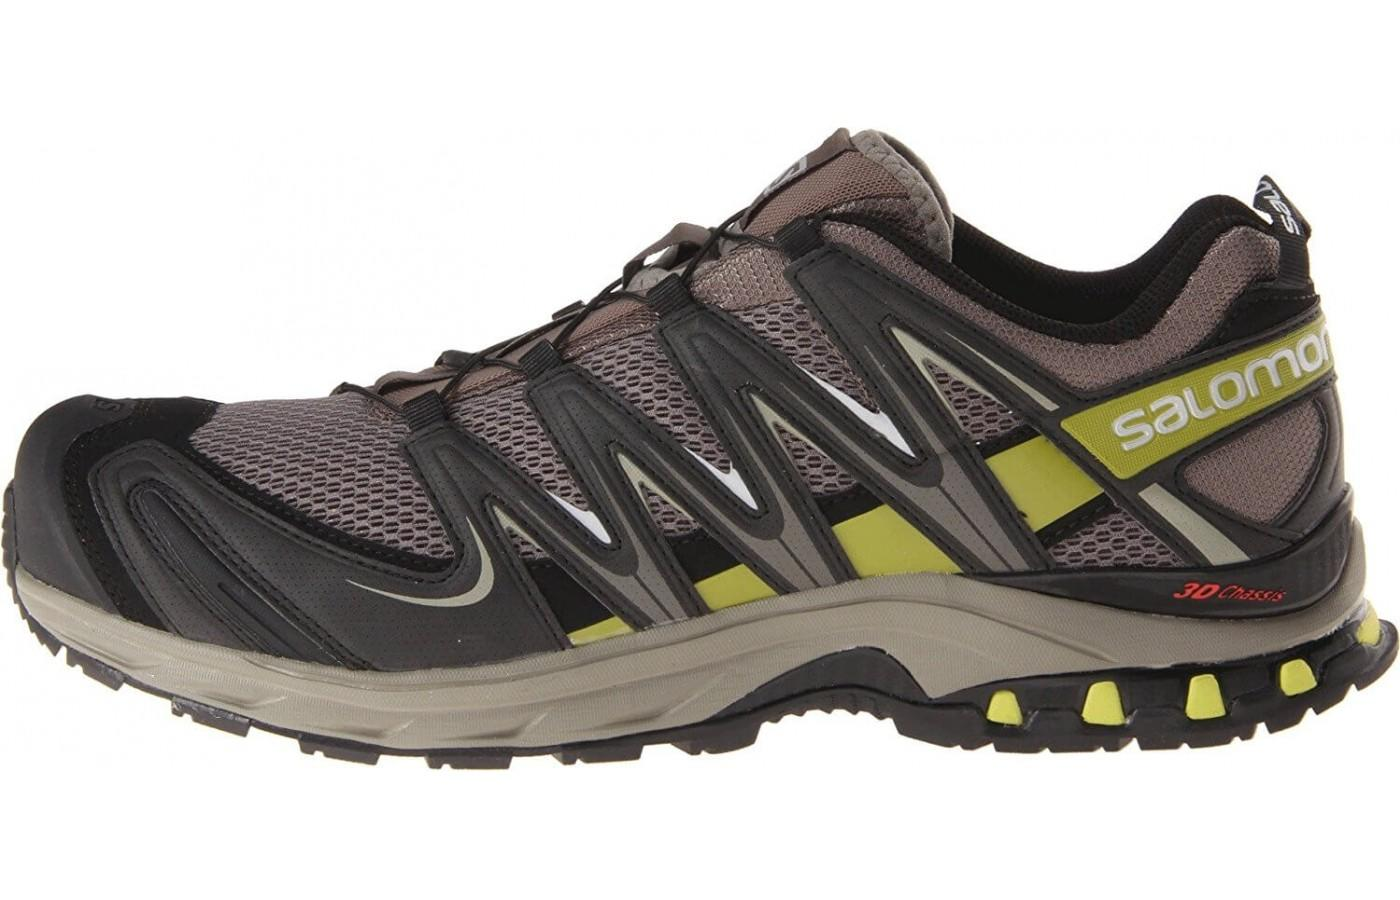 The Salomon Xa Pro 3D M+ stabilizes the foot while still allowing forward movement